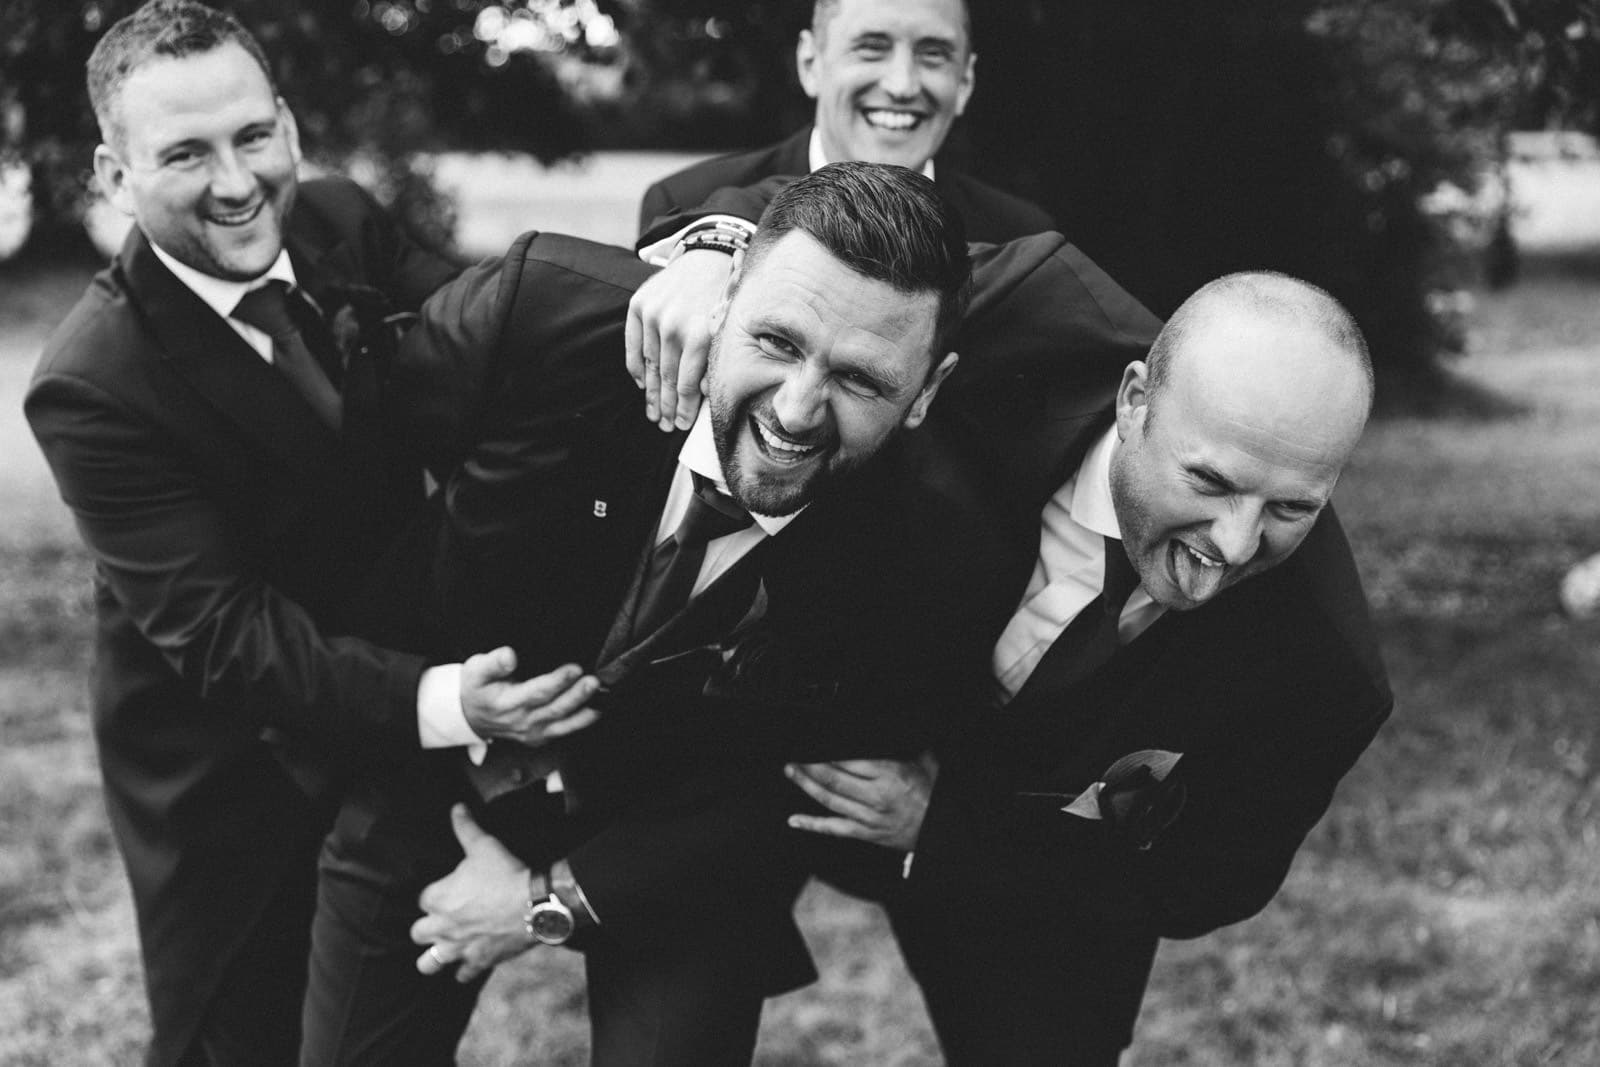 groomsmen playing with the groom and grabbing him